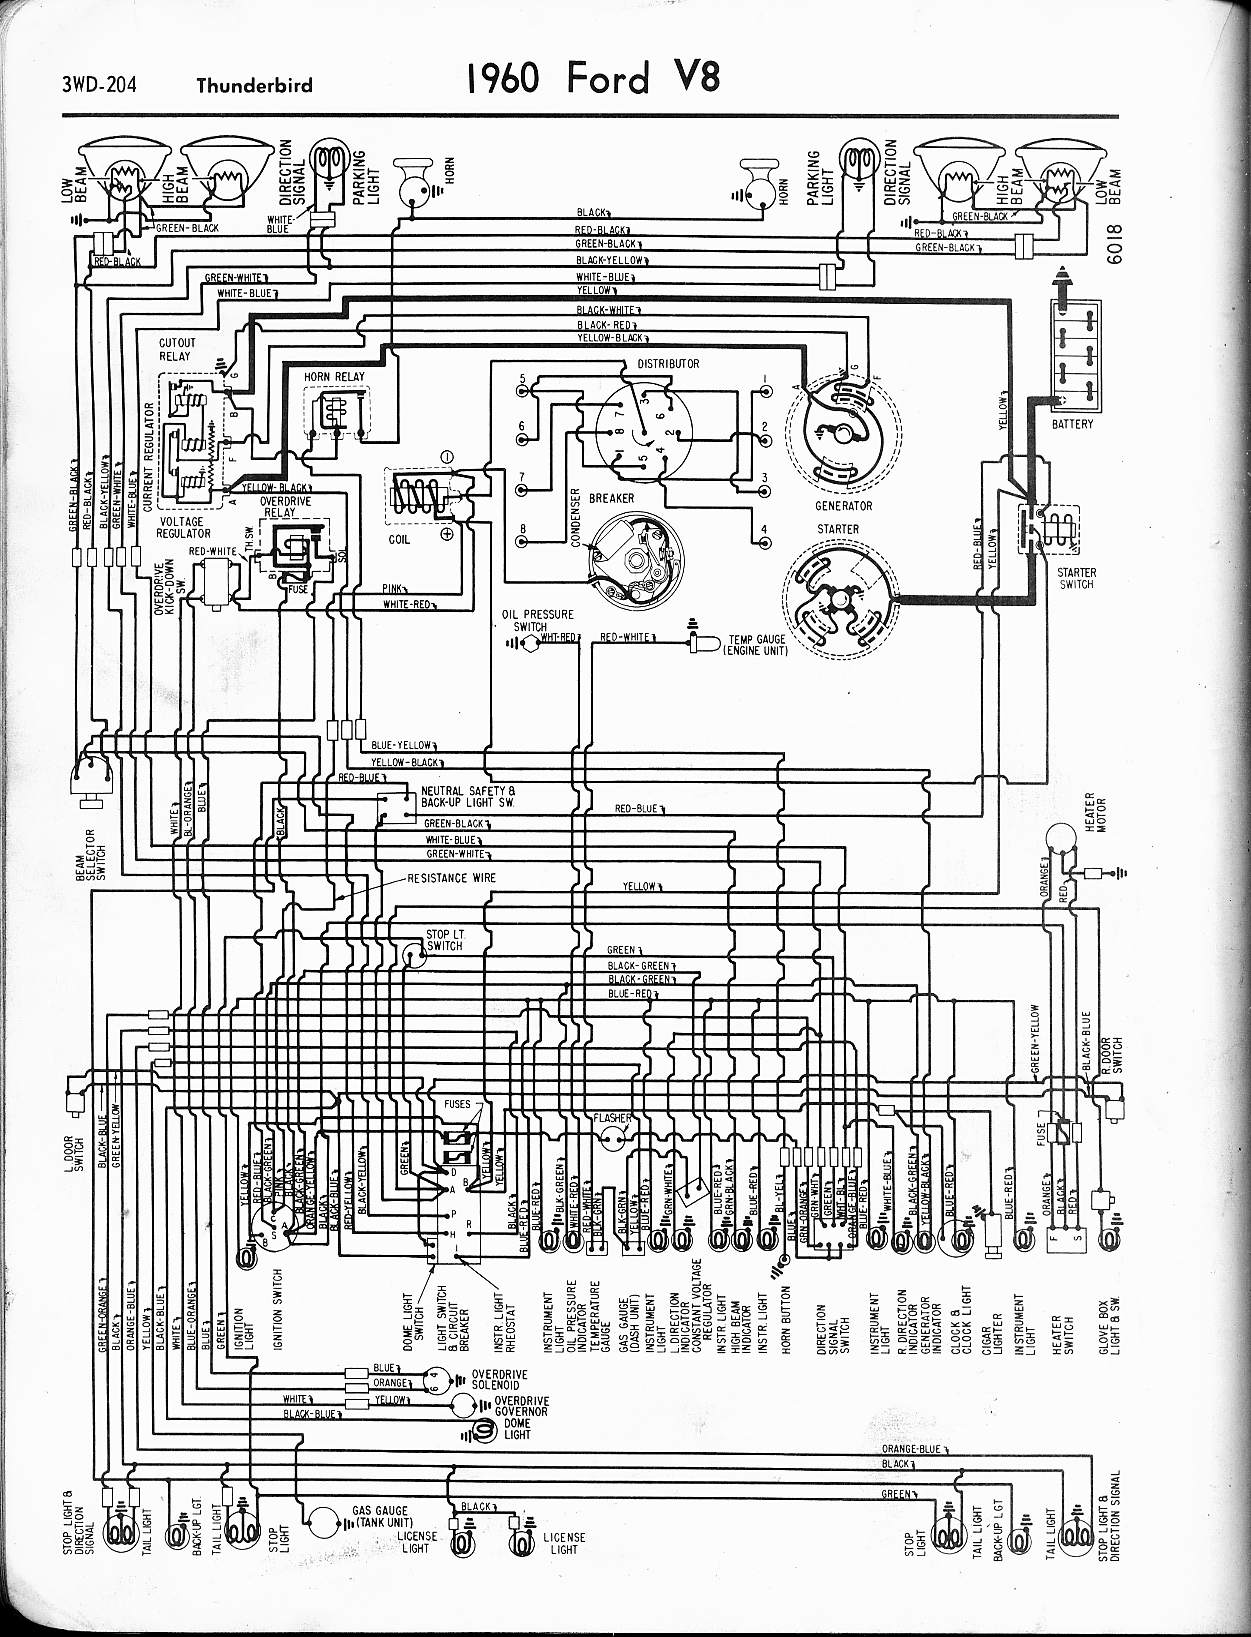 57 65 Ford Wiring Diagrams 1967 Thunderbird Wiring Diagram 1964 Thunderbird  Stereo Wiring Diagram